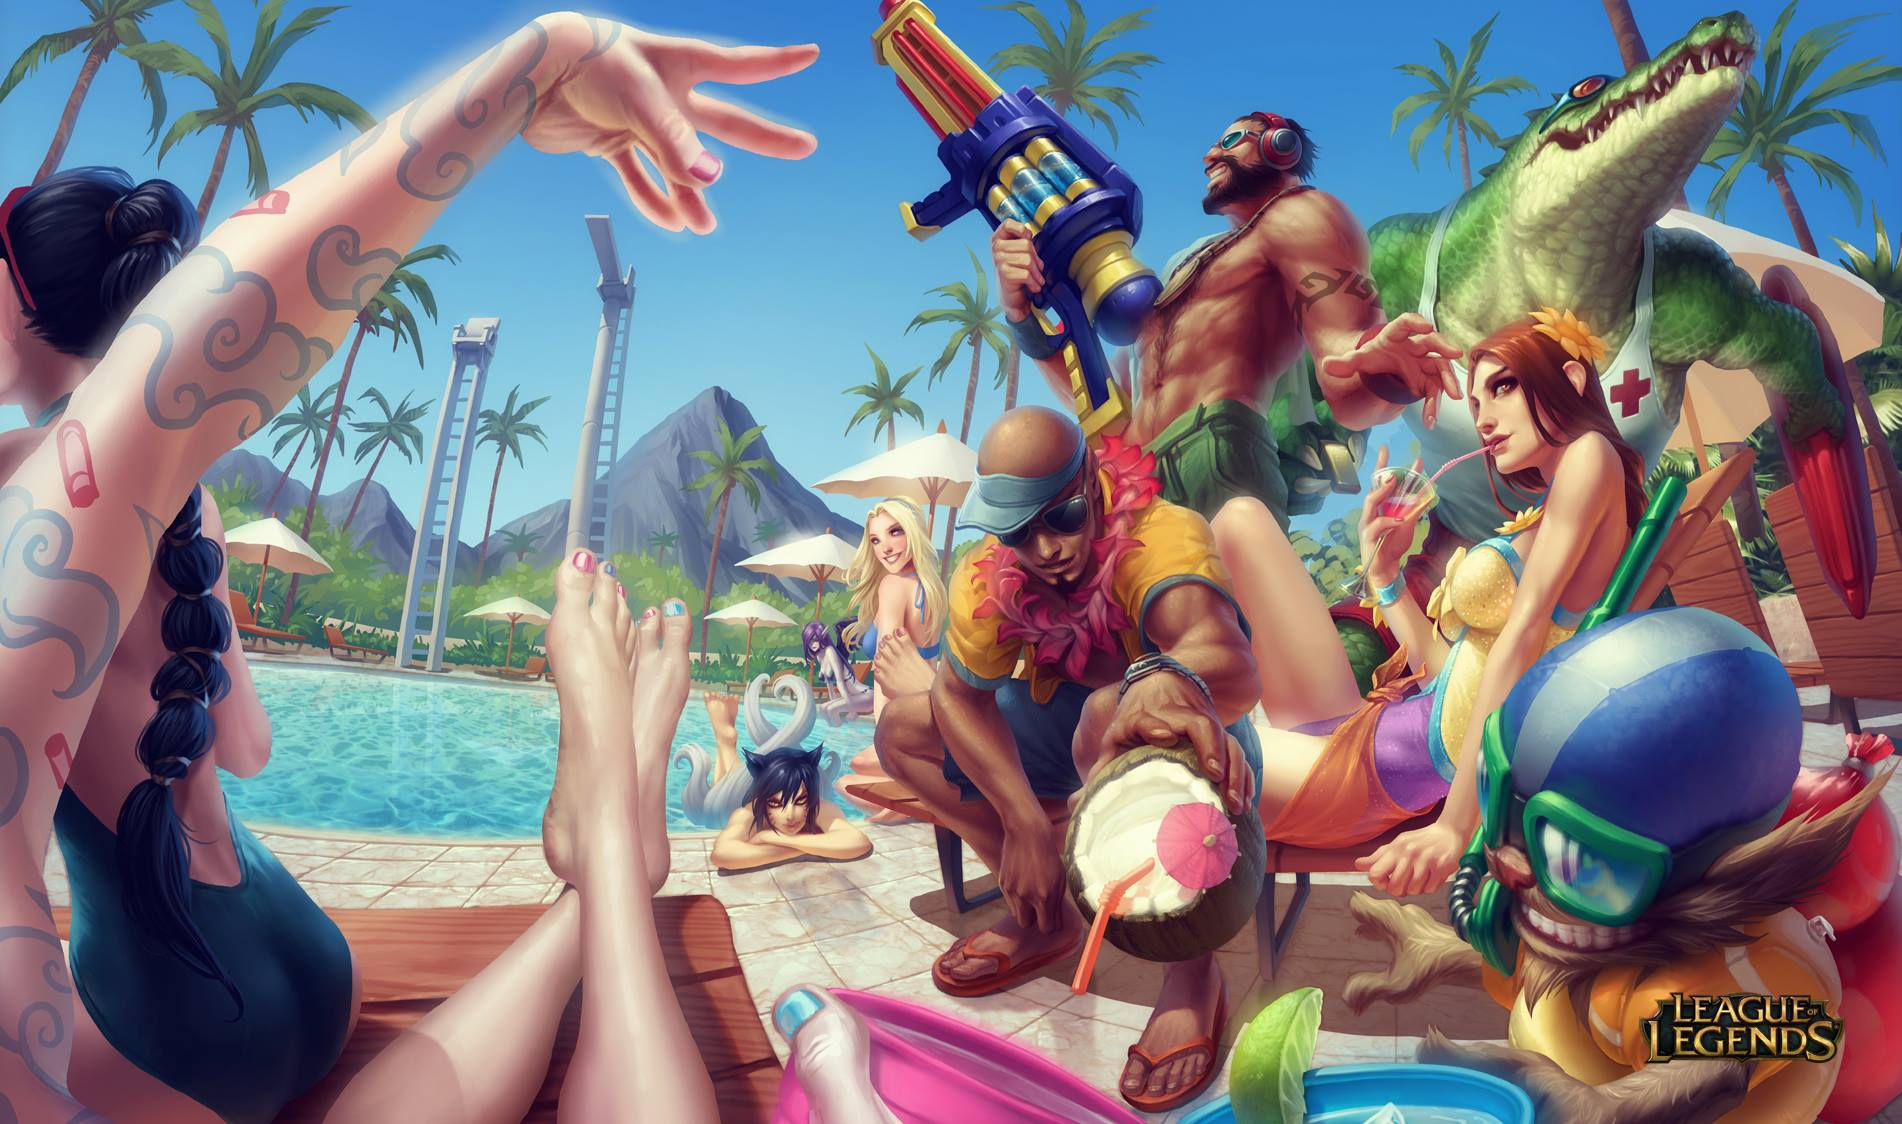 League Of Legends Celebrates Summer With Pool Party Skins For Leona